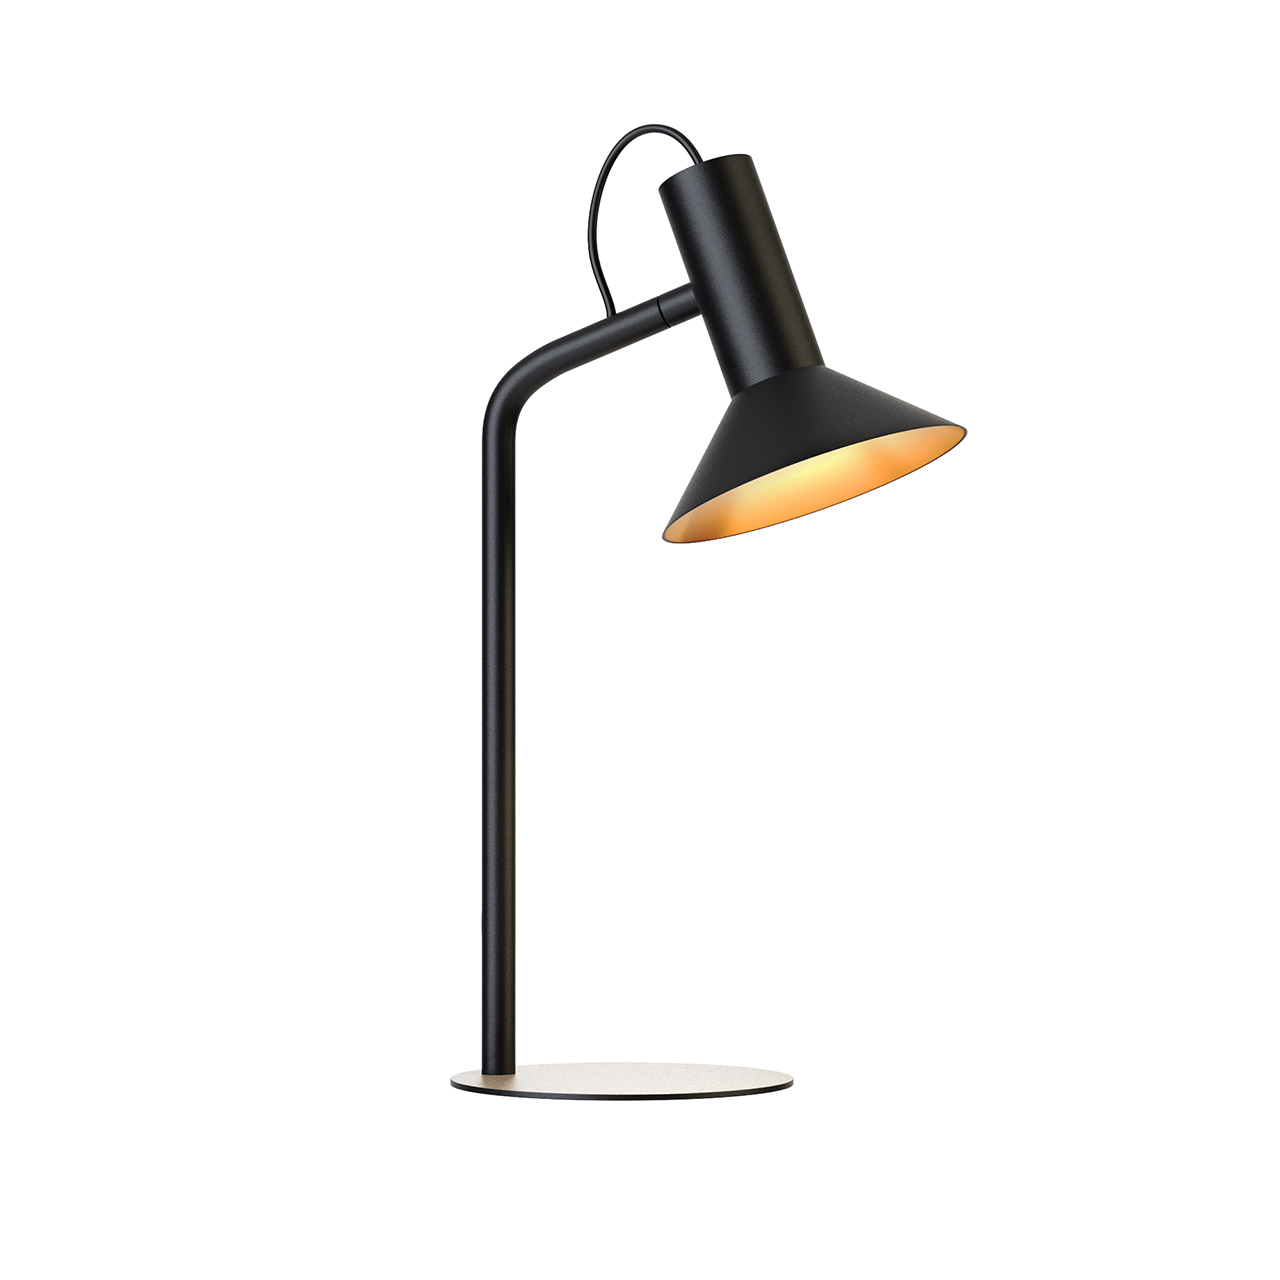 Roomor 1 Table Lamp 637120BK1 by Wever Ducre